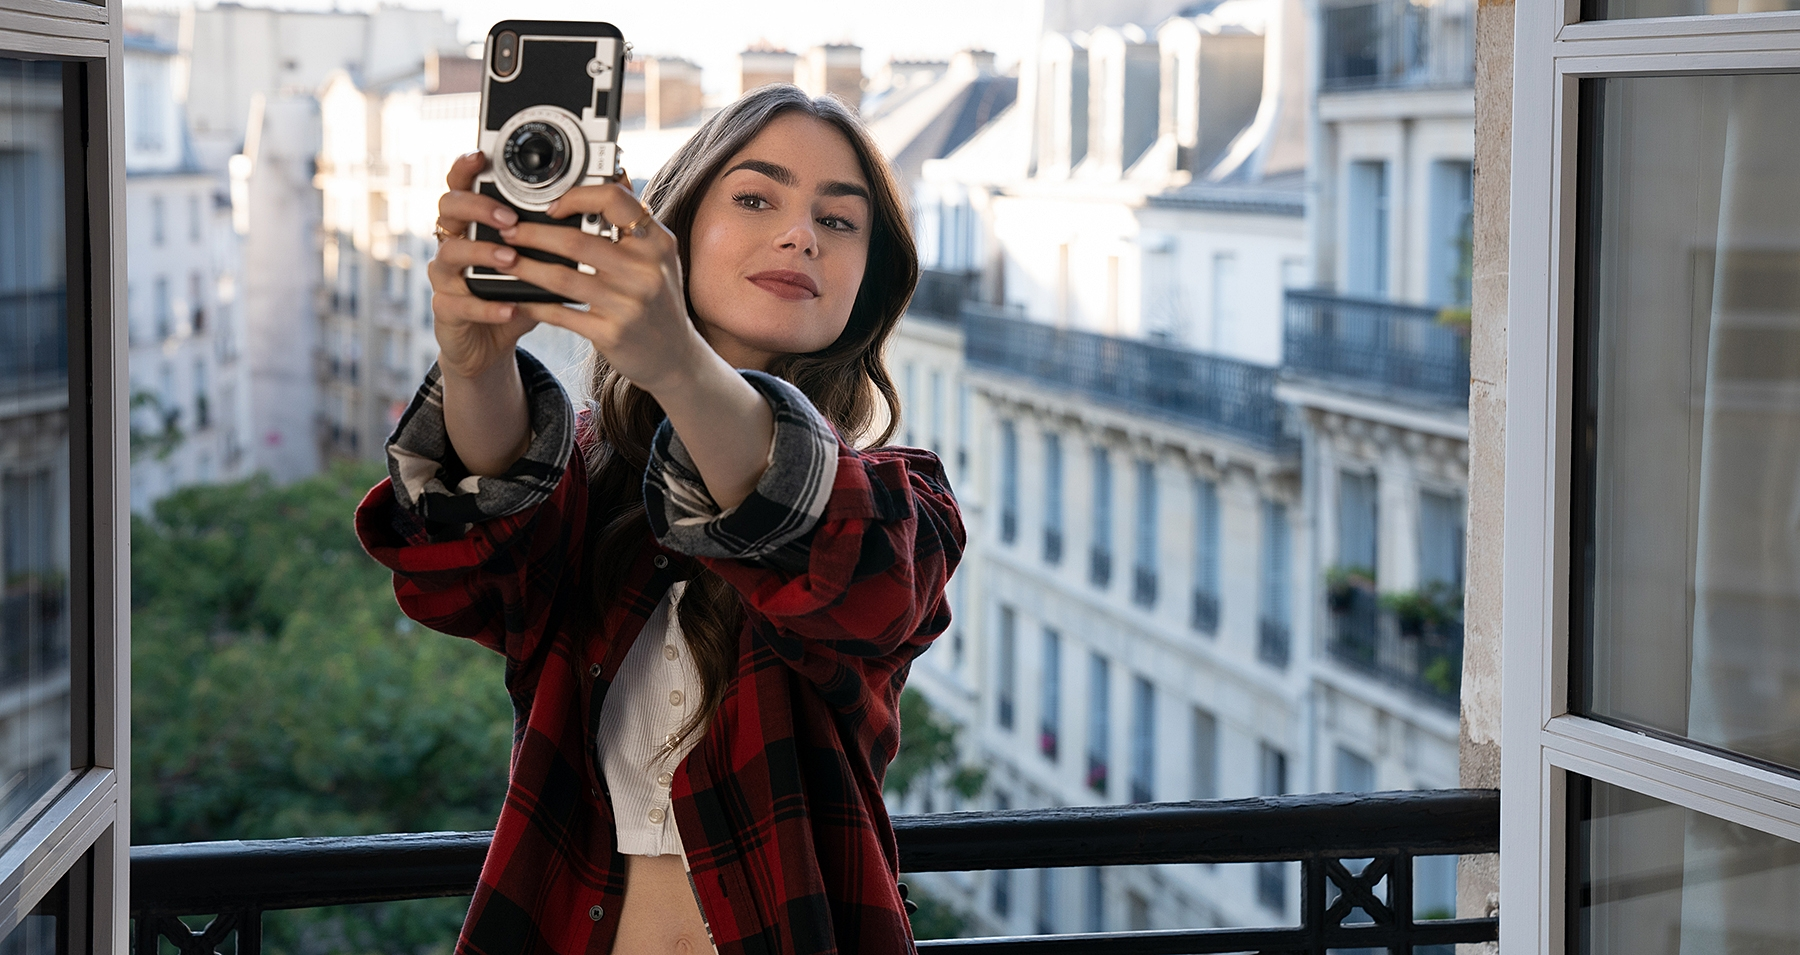 Emily-in-Paris-Featured.jpg?mtime=20210603163631#asset:101621